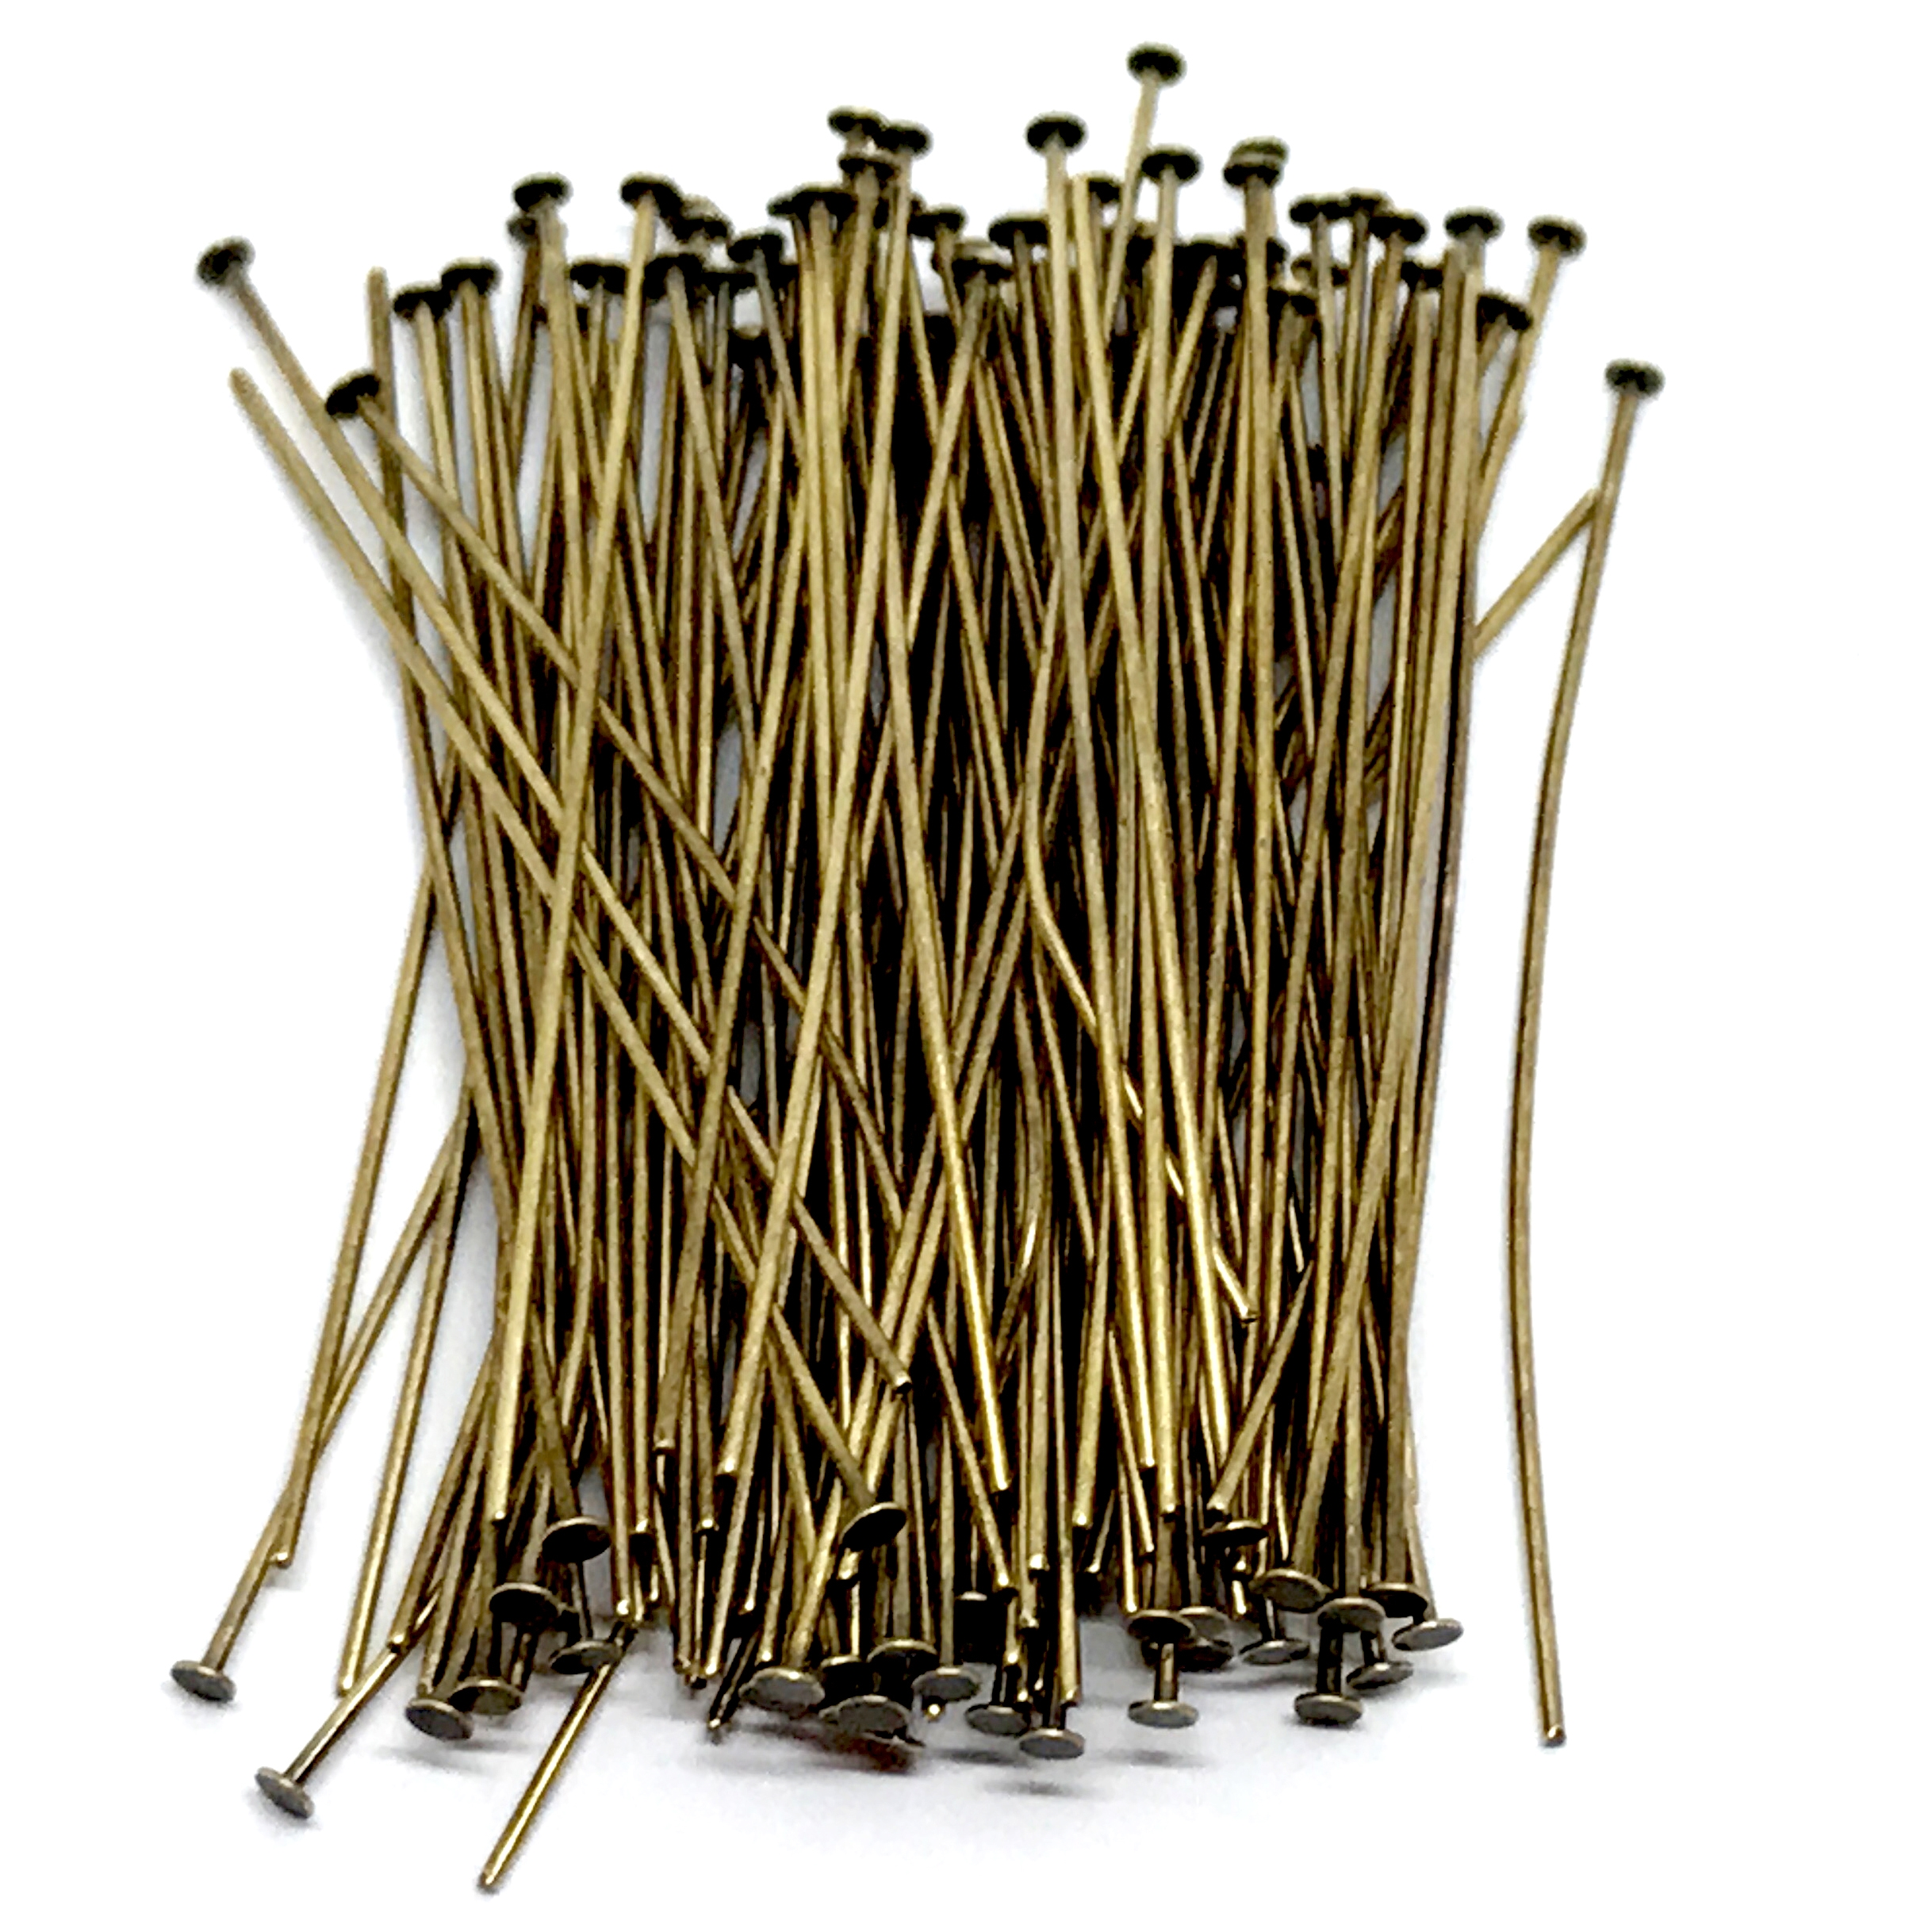 headpins, 2 inches, brass ox, 04081, brass ox, jewelry making supplies, brass jewelry parts, brass headpins, vintage jewelry supplies, beading supplies, brass findings, brass headpins, US made, nickel free, bsueboutiques